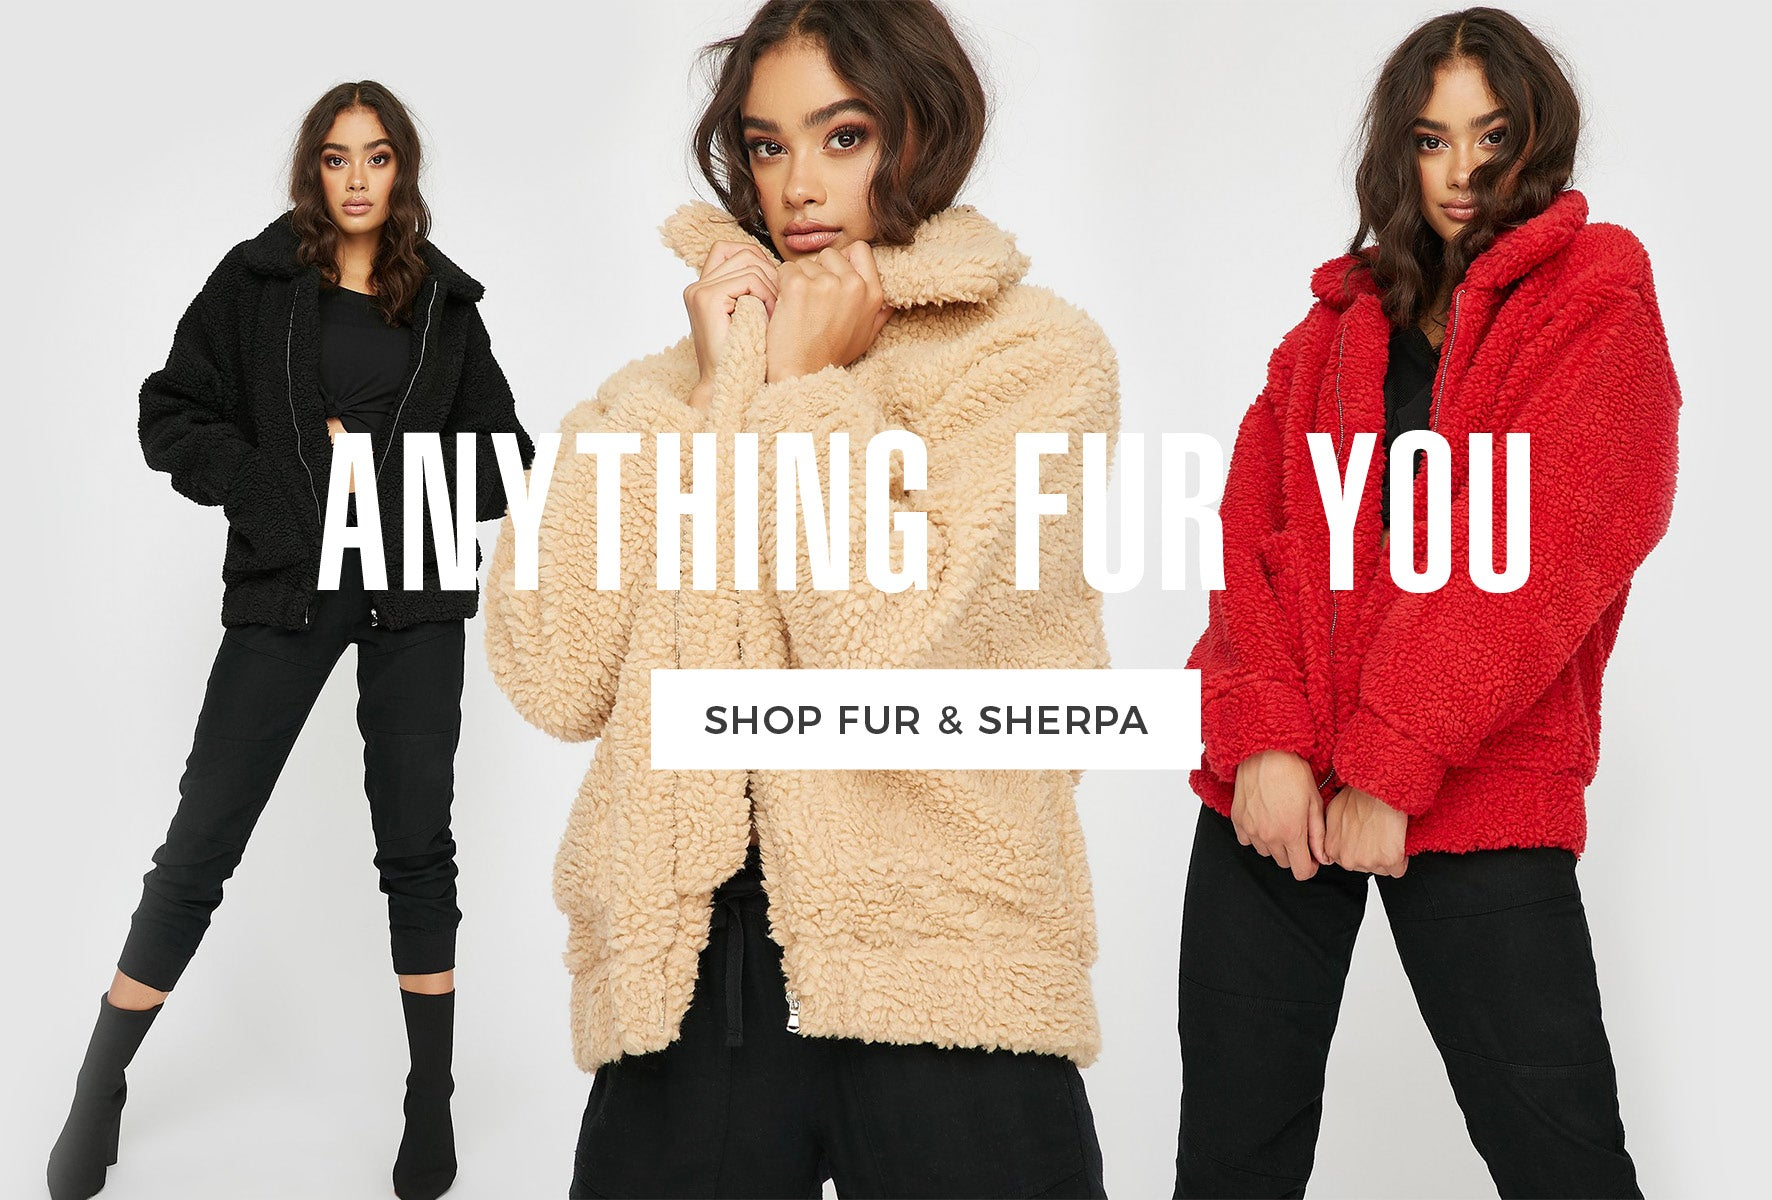 Anything Fur You - Shop Fur & Sherpa